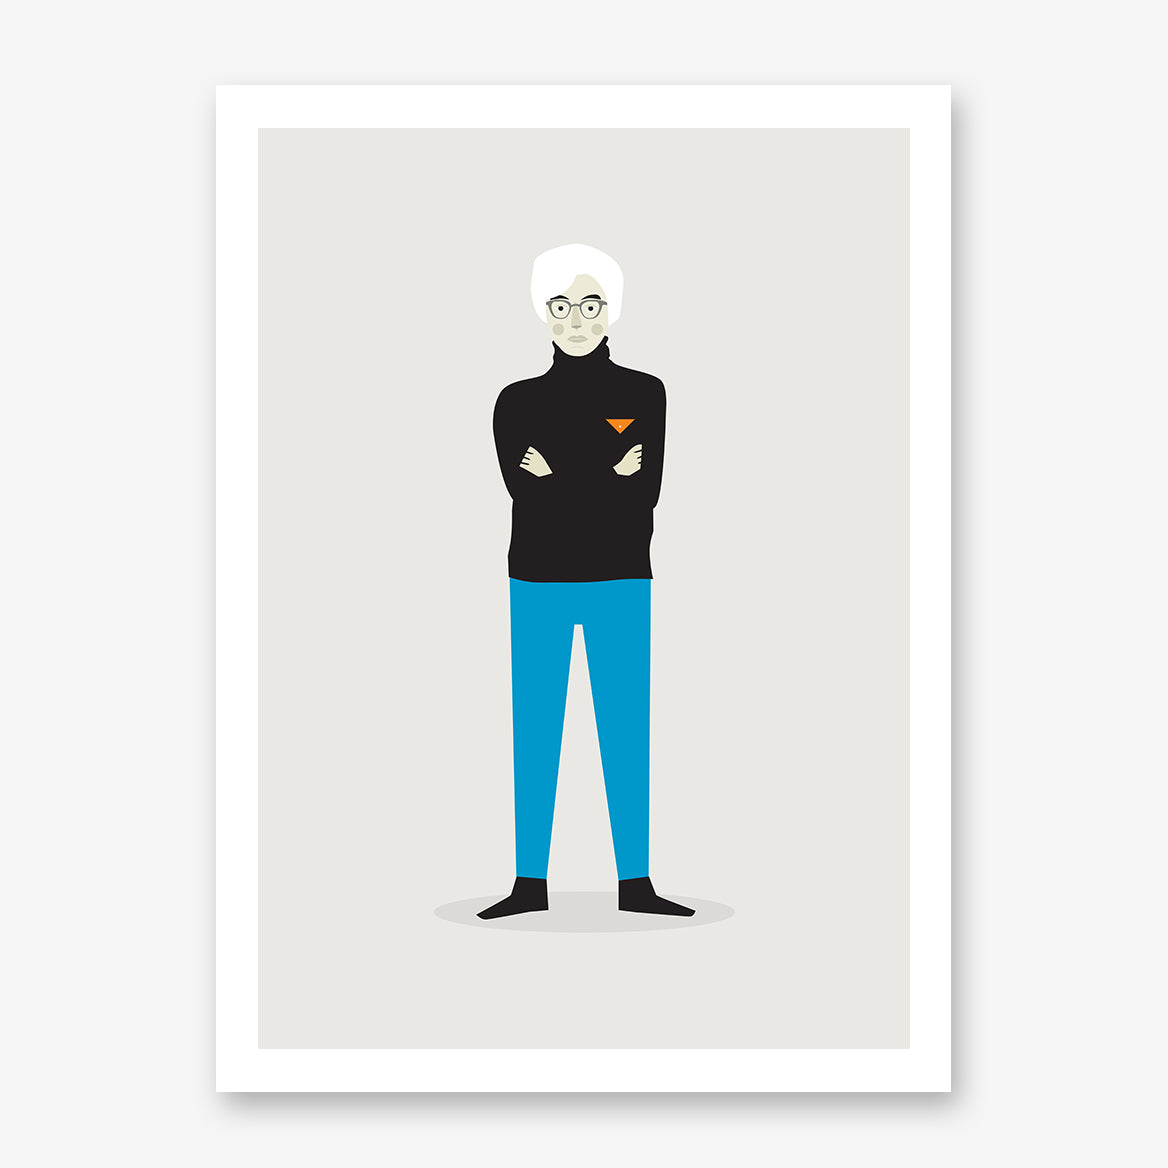 Celebrity illustration print with Andy Warhol stylishly drawn by Judy Kaufmann to bring out the essence of his style and character.